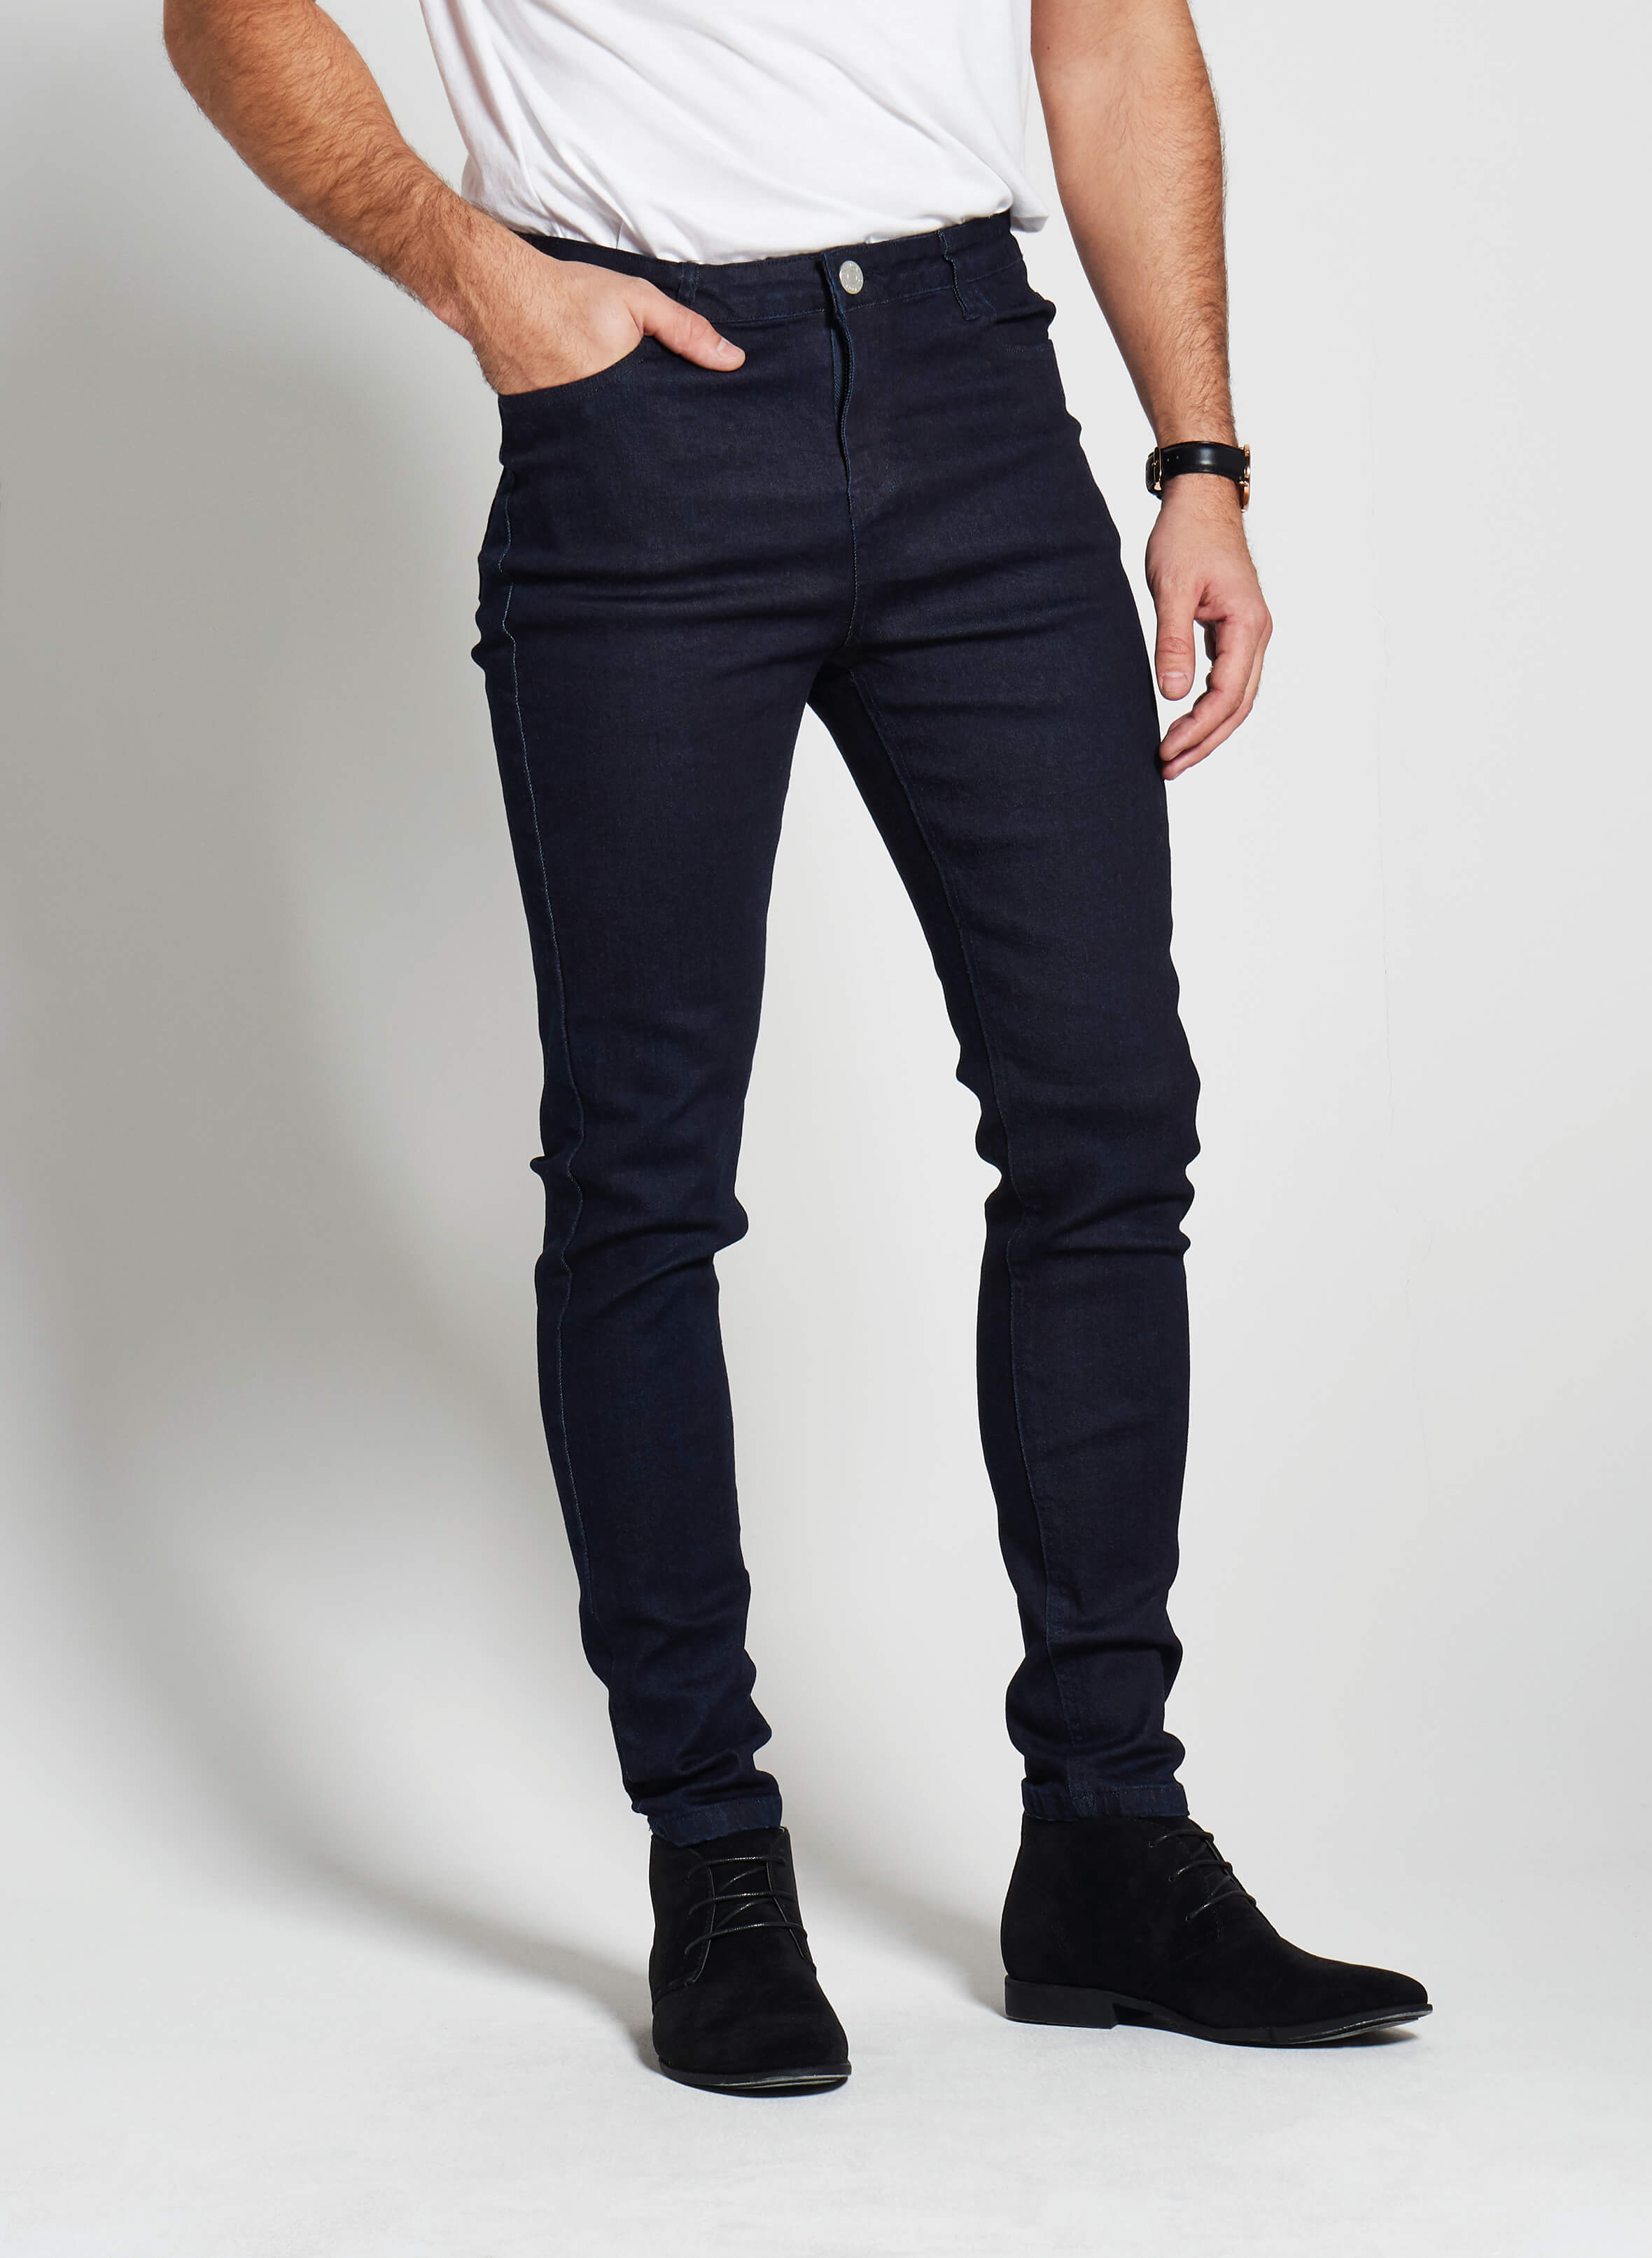 Denim Only® Slim Fit Jeans - Dark Navy